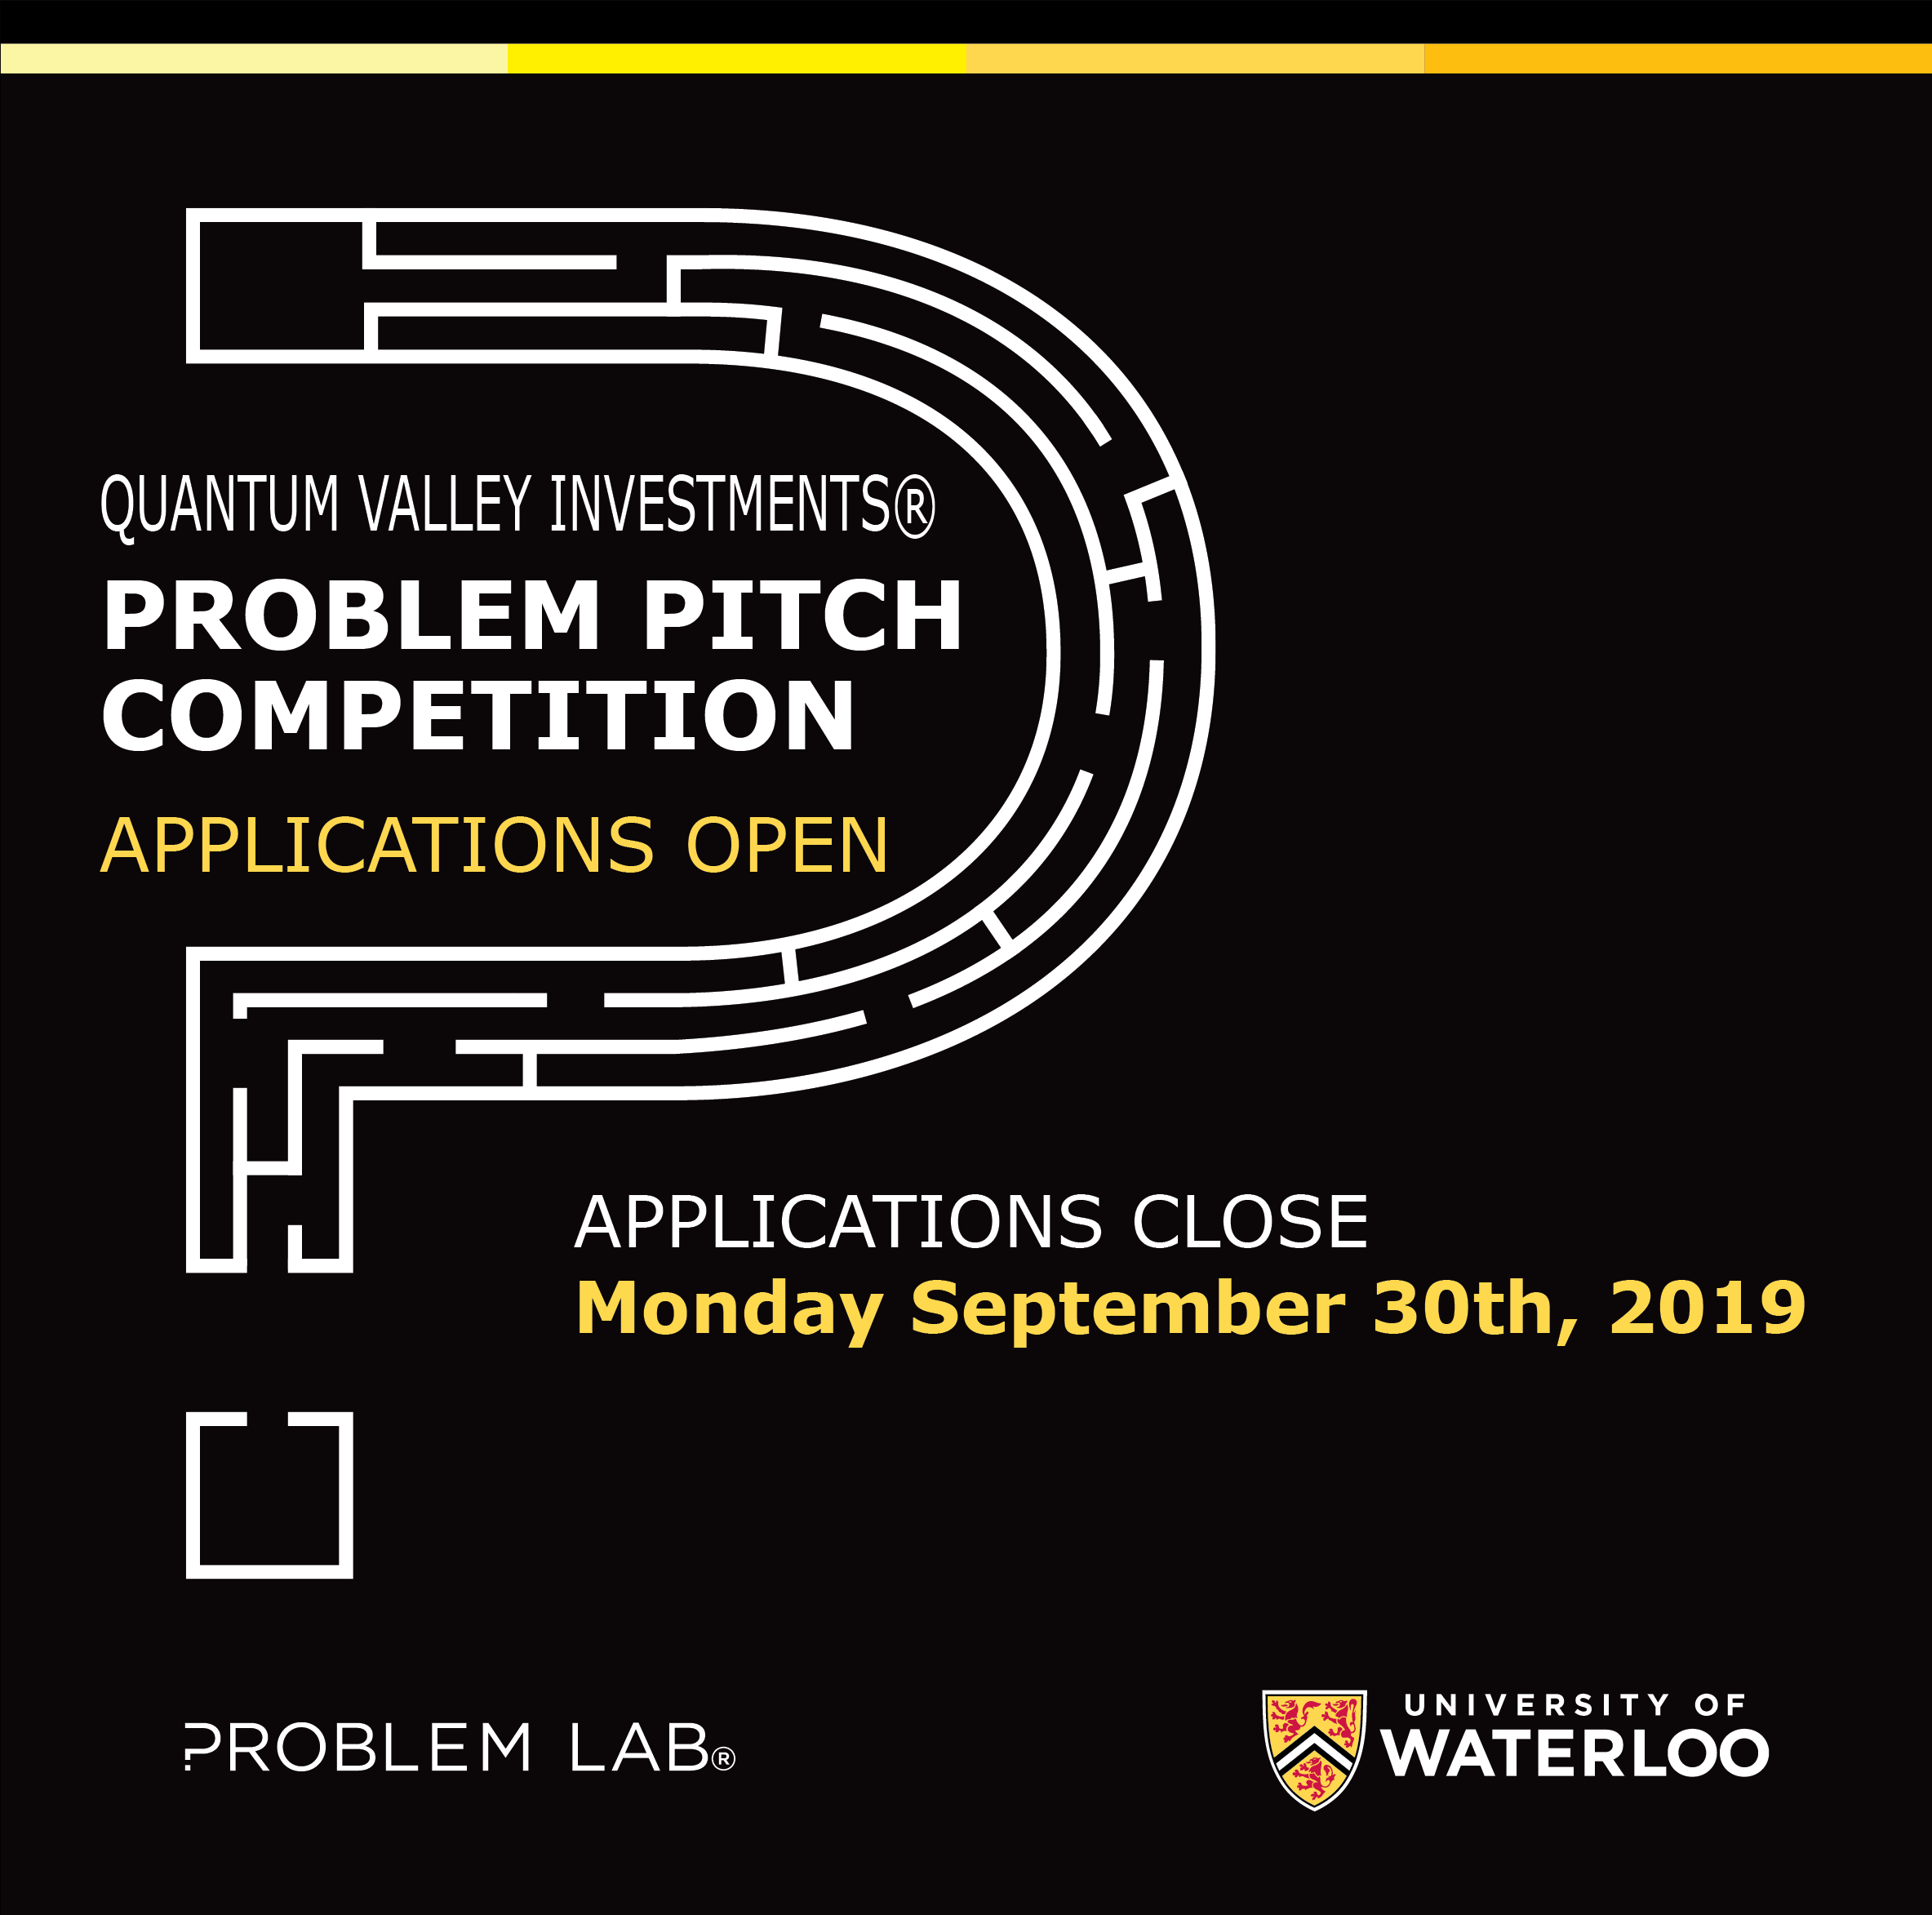 Problem Pitch event image